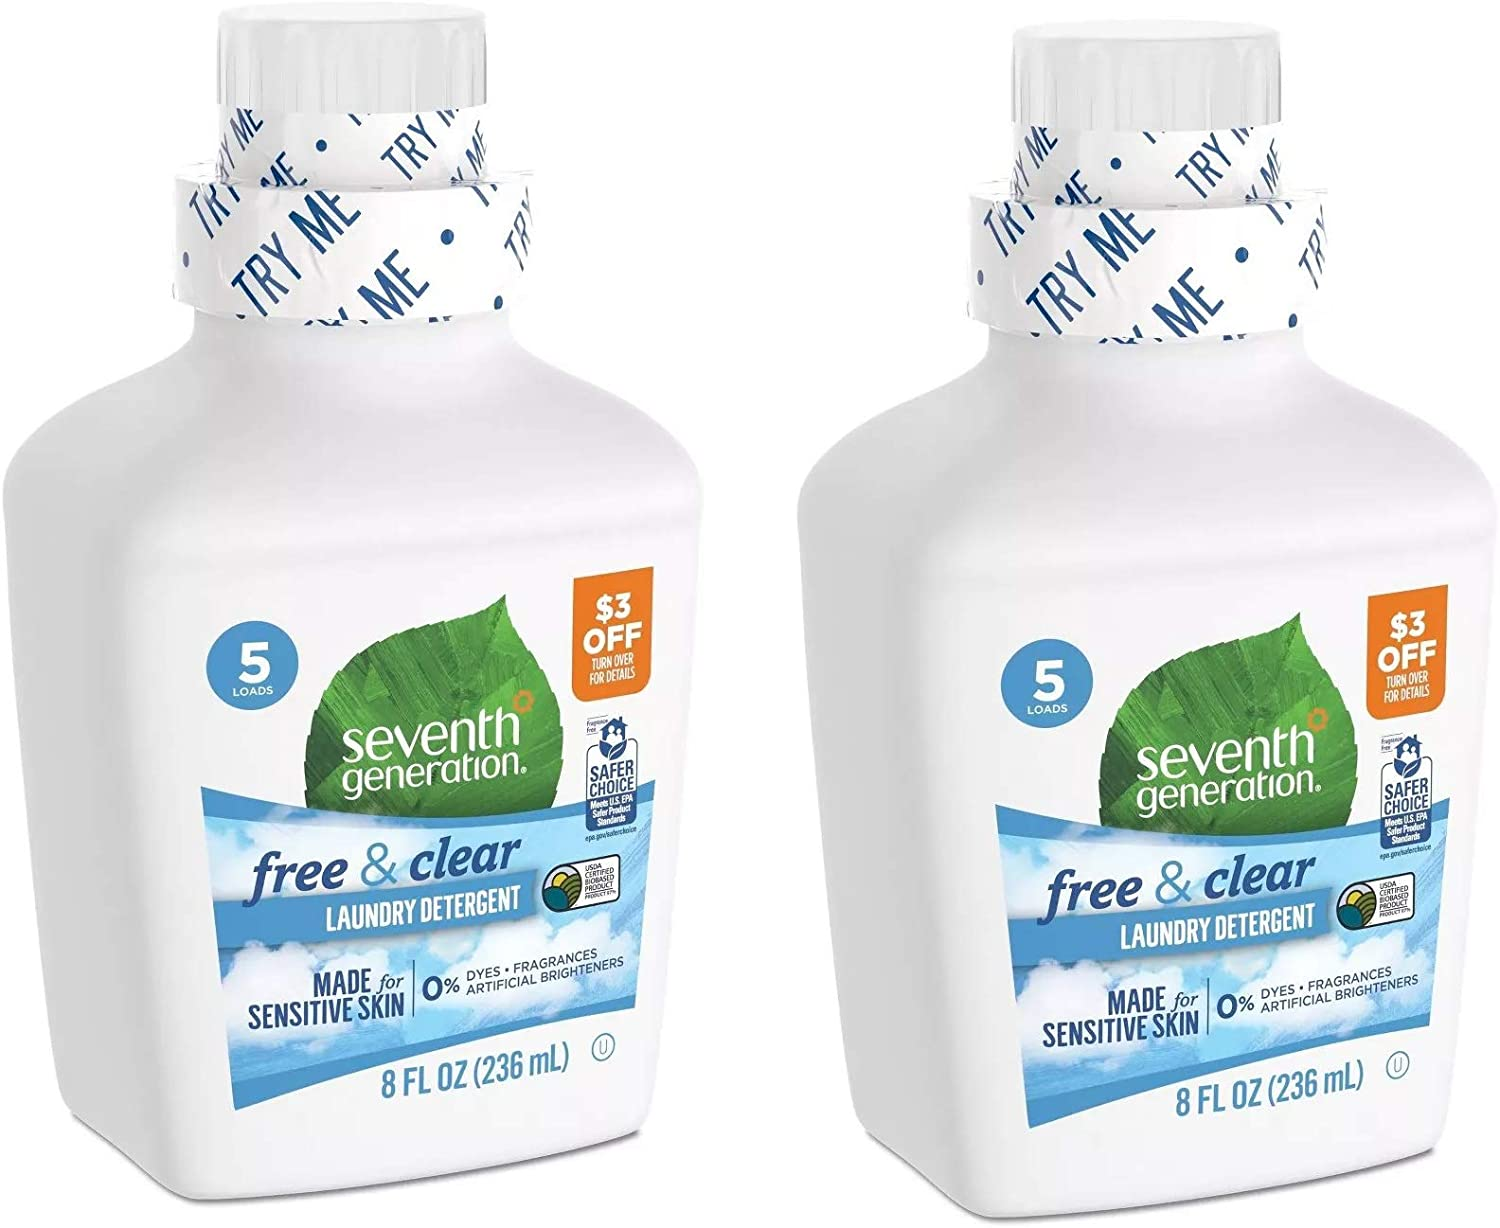 Seventh Generation - Free & Clear Trial Liquid Laundry Set of 2 Bottles - 8oz Each